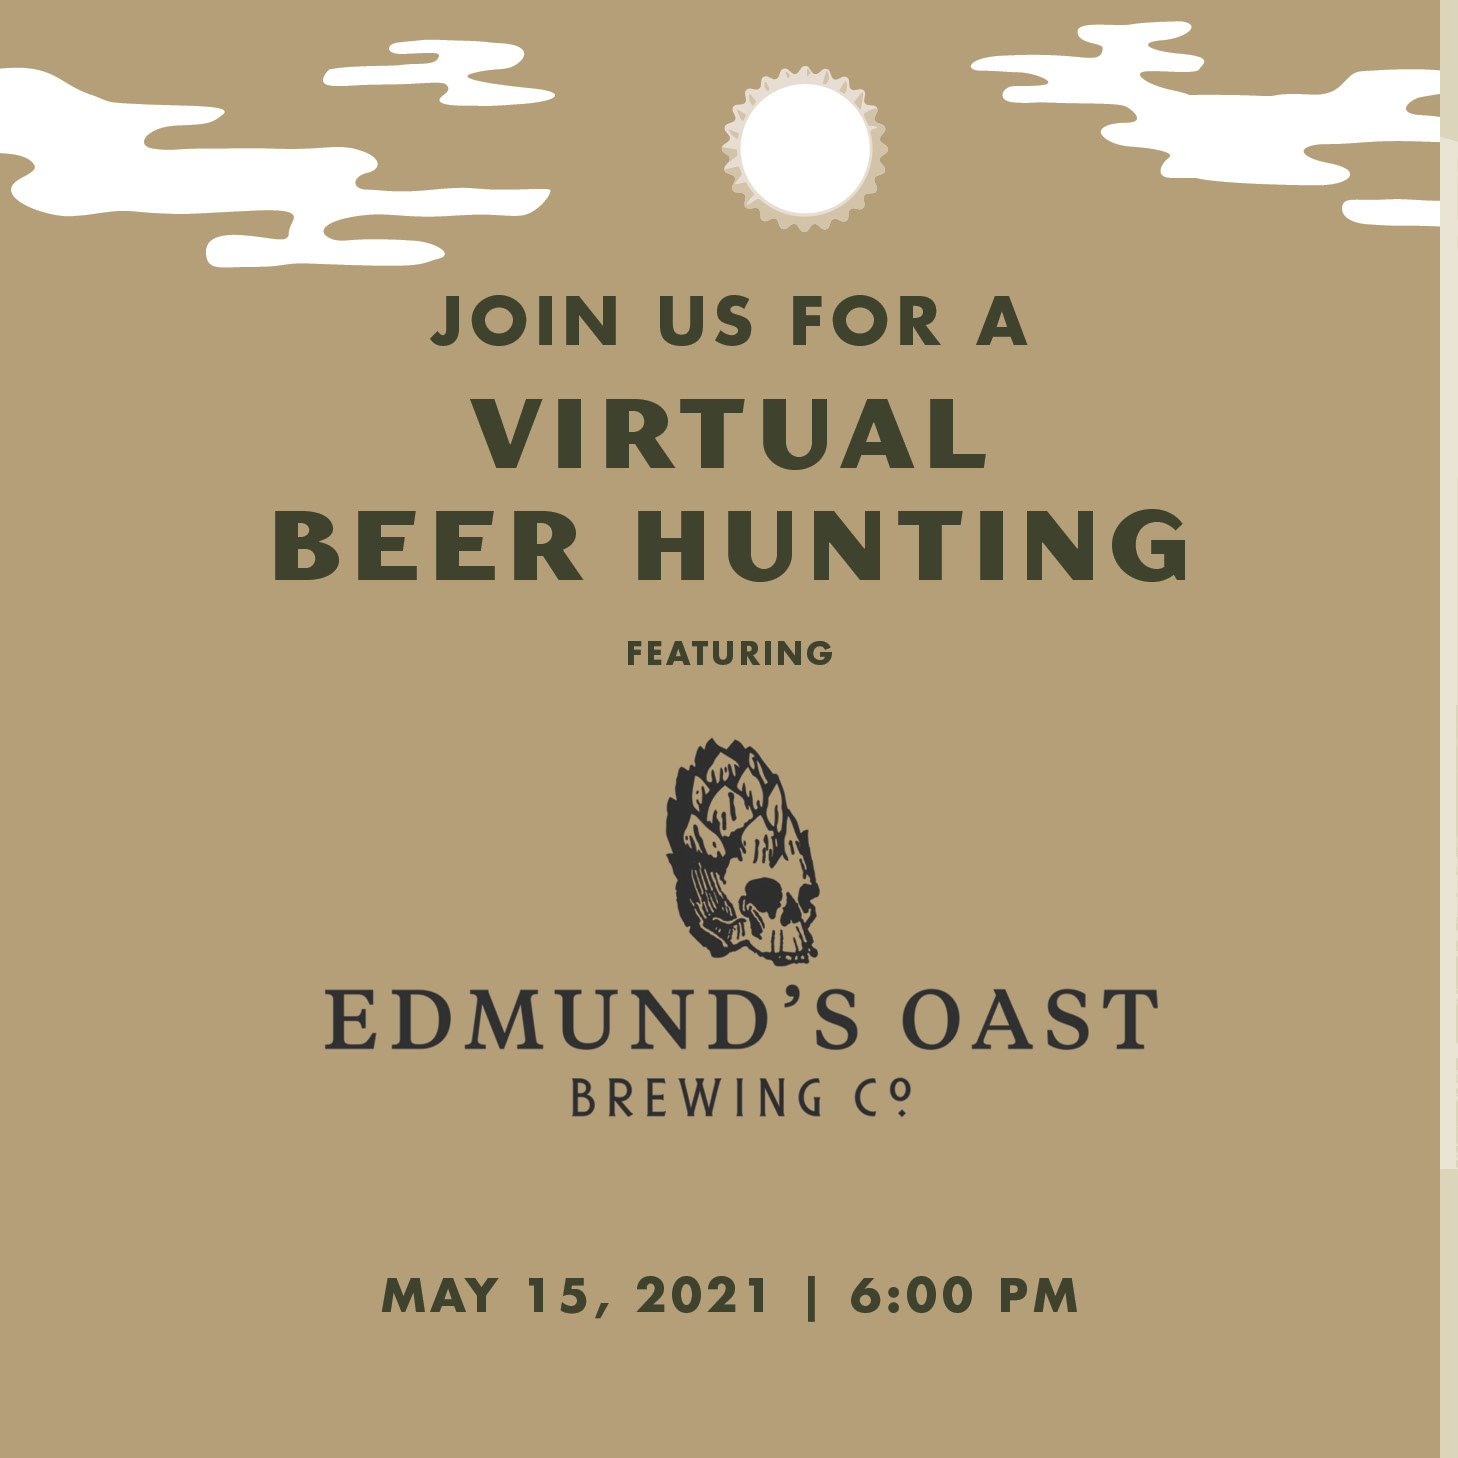 EZ_17032_Virtual Beer Tasting Landing Page_Edmunds Oast_1